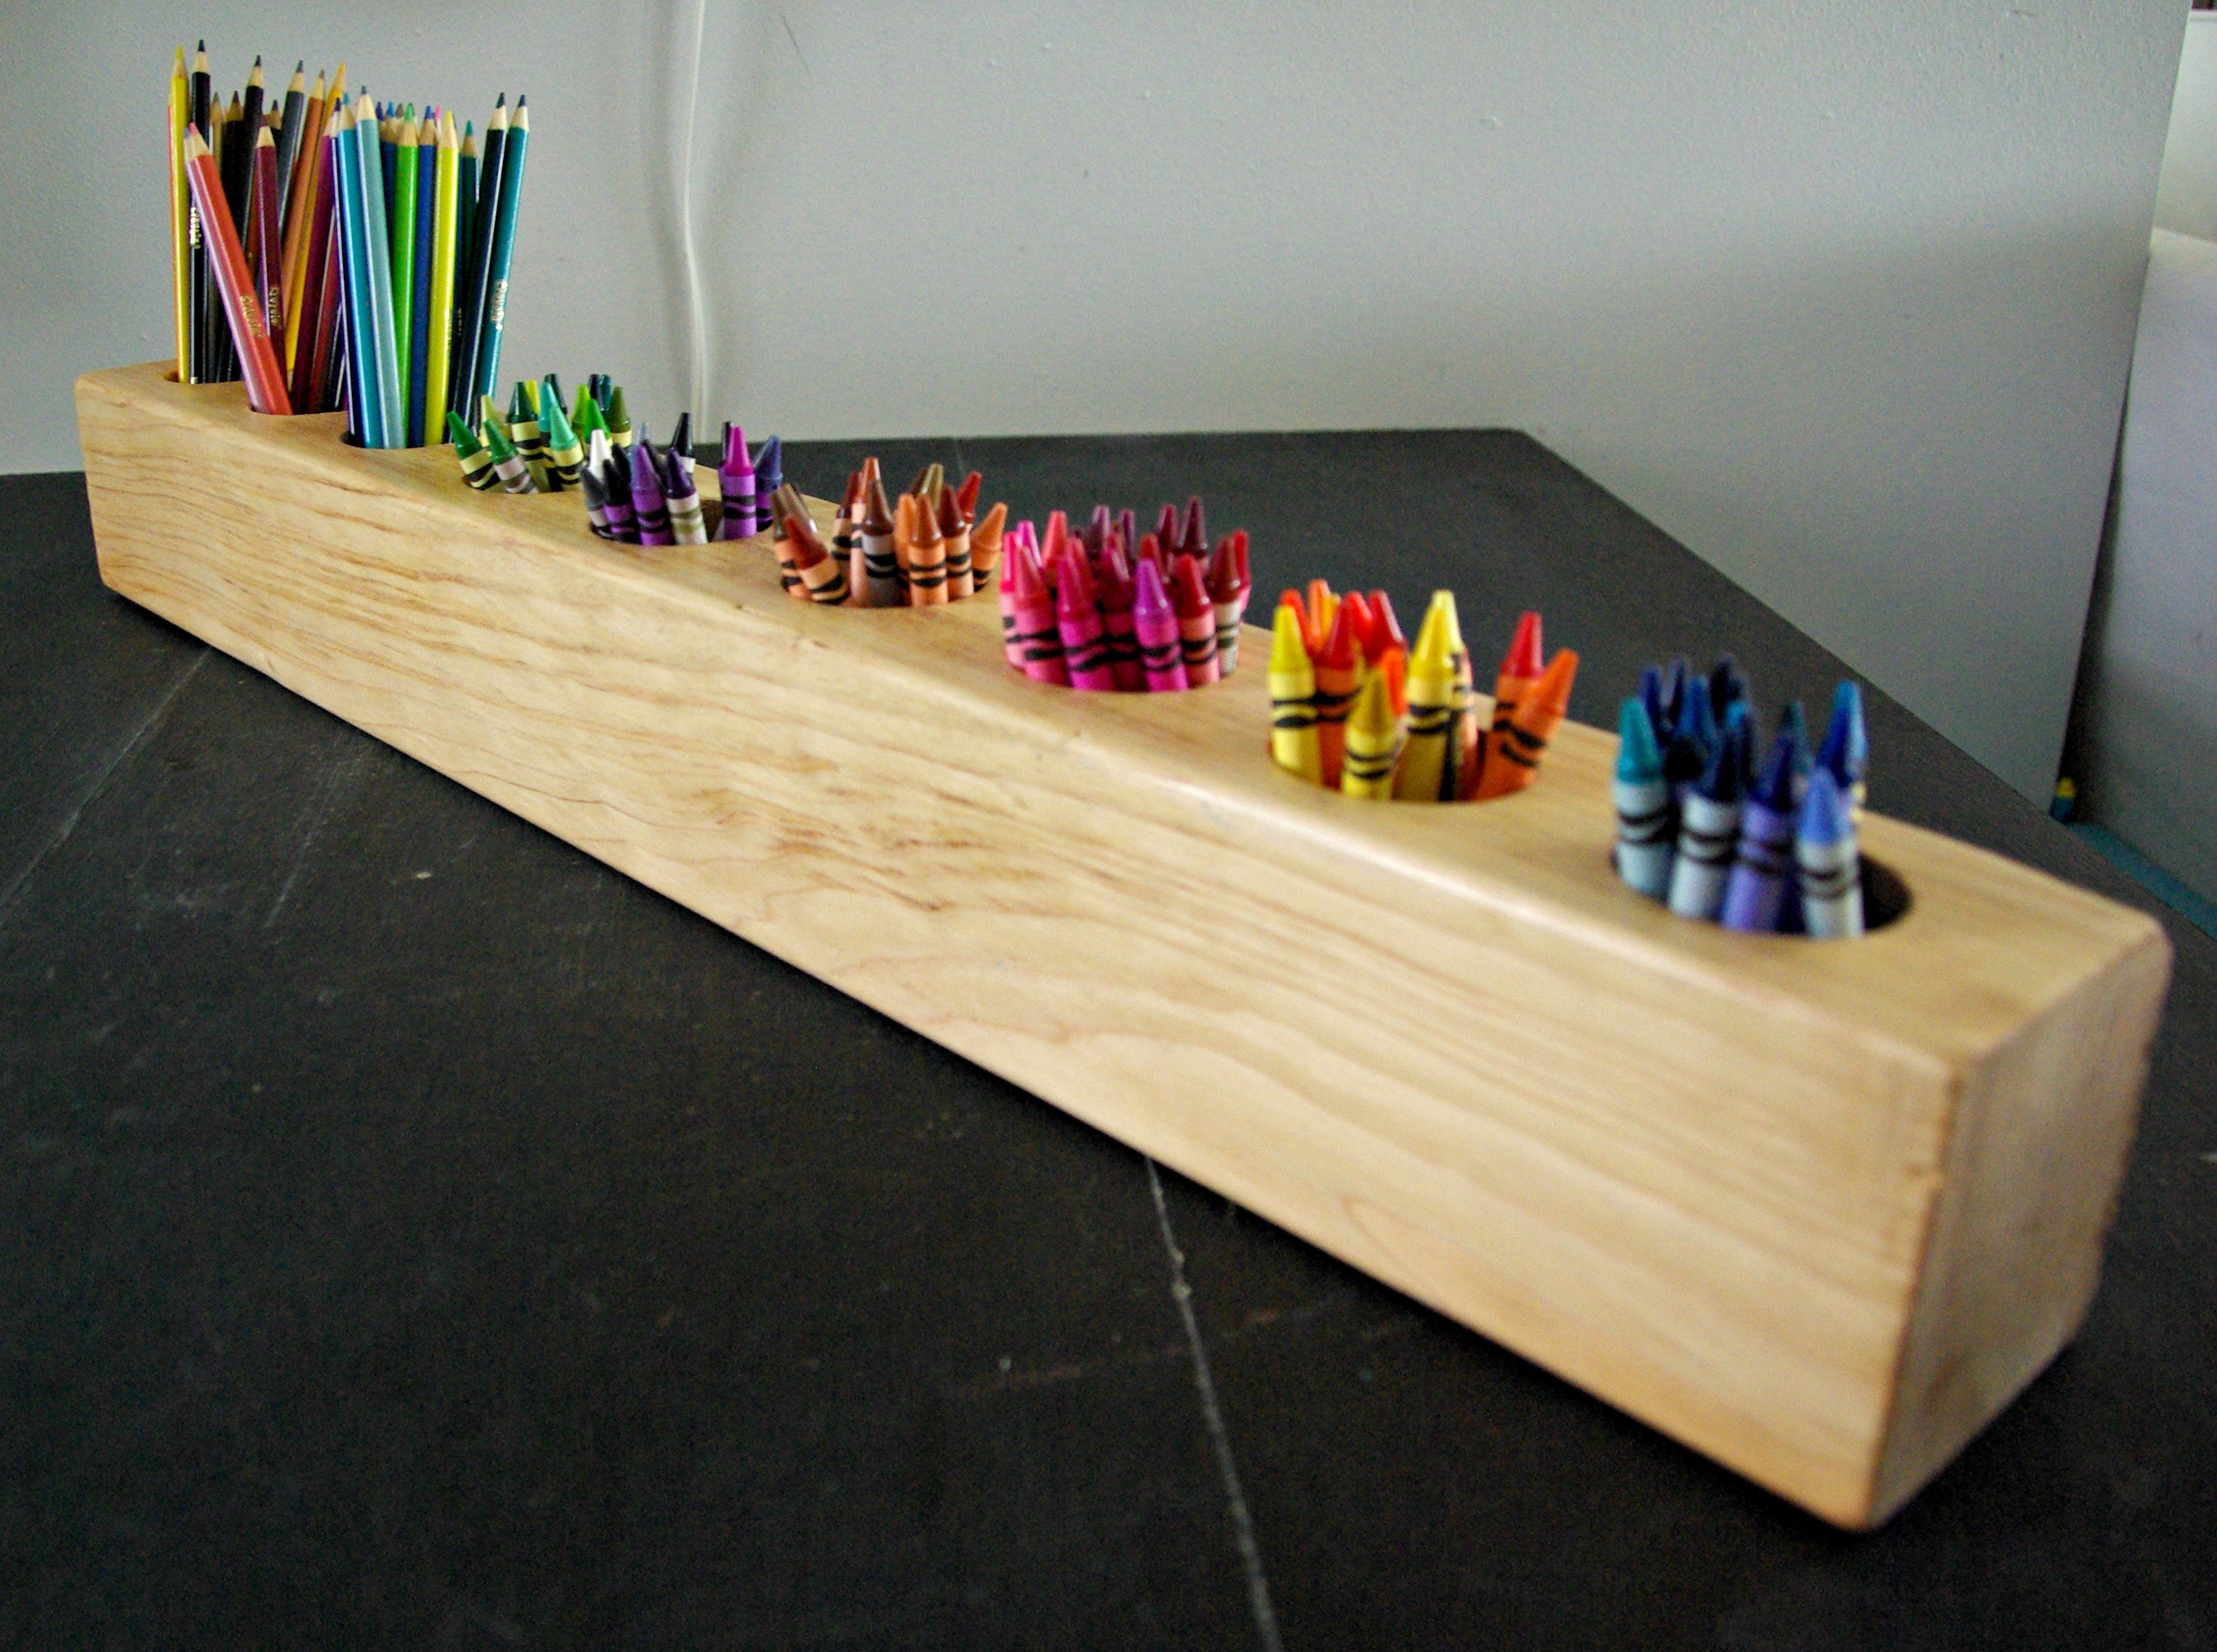 Best ideas about DIY Art Supply Organizer . Save or Pin How to make a 4x4 wood and rustic art supply organizer Now.